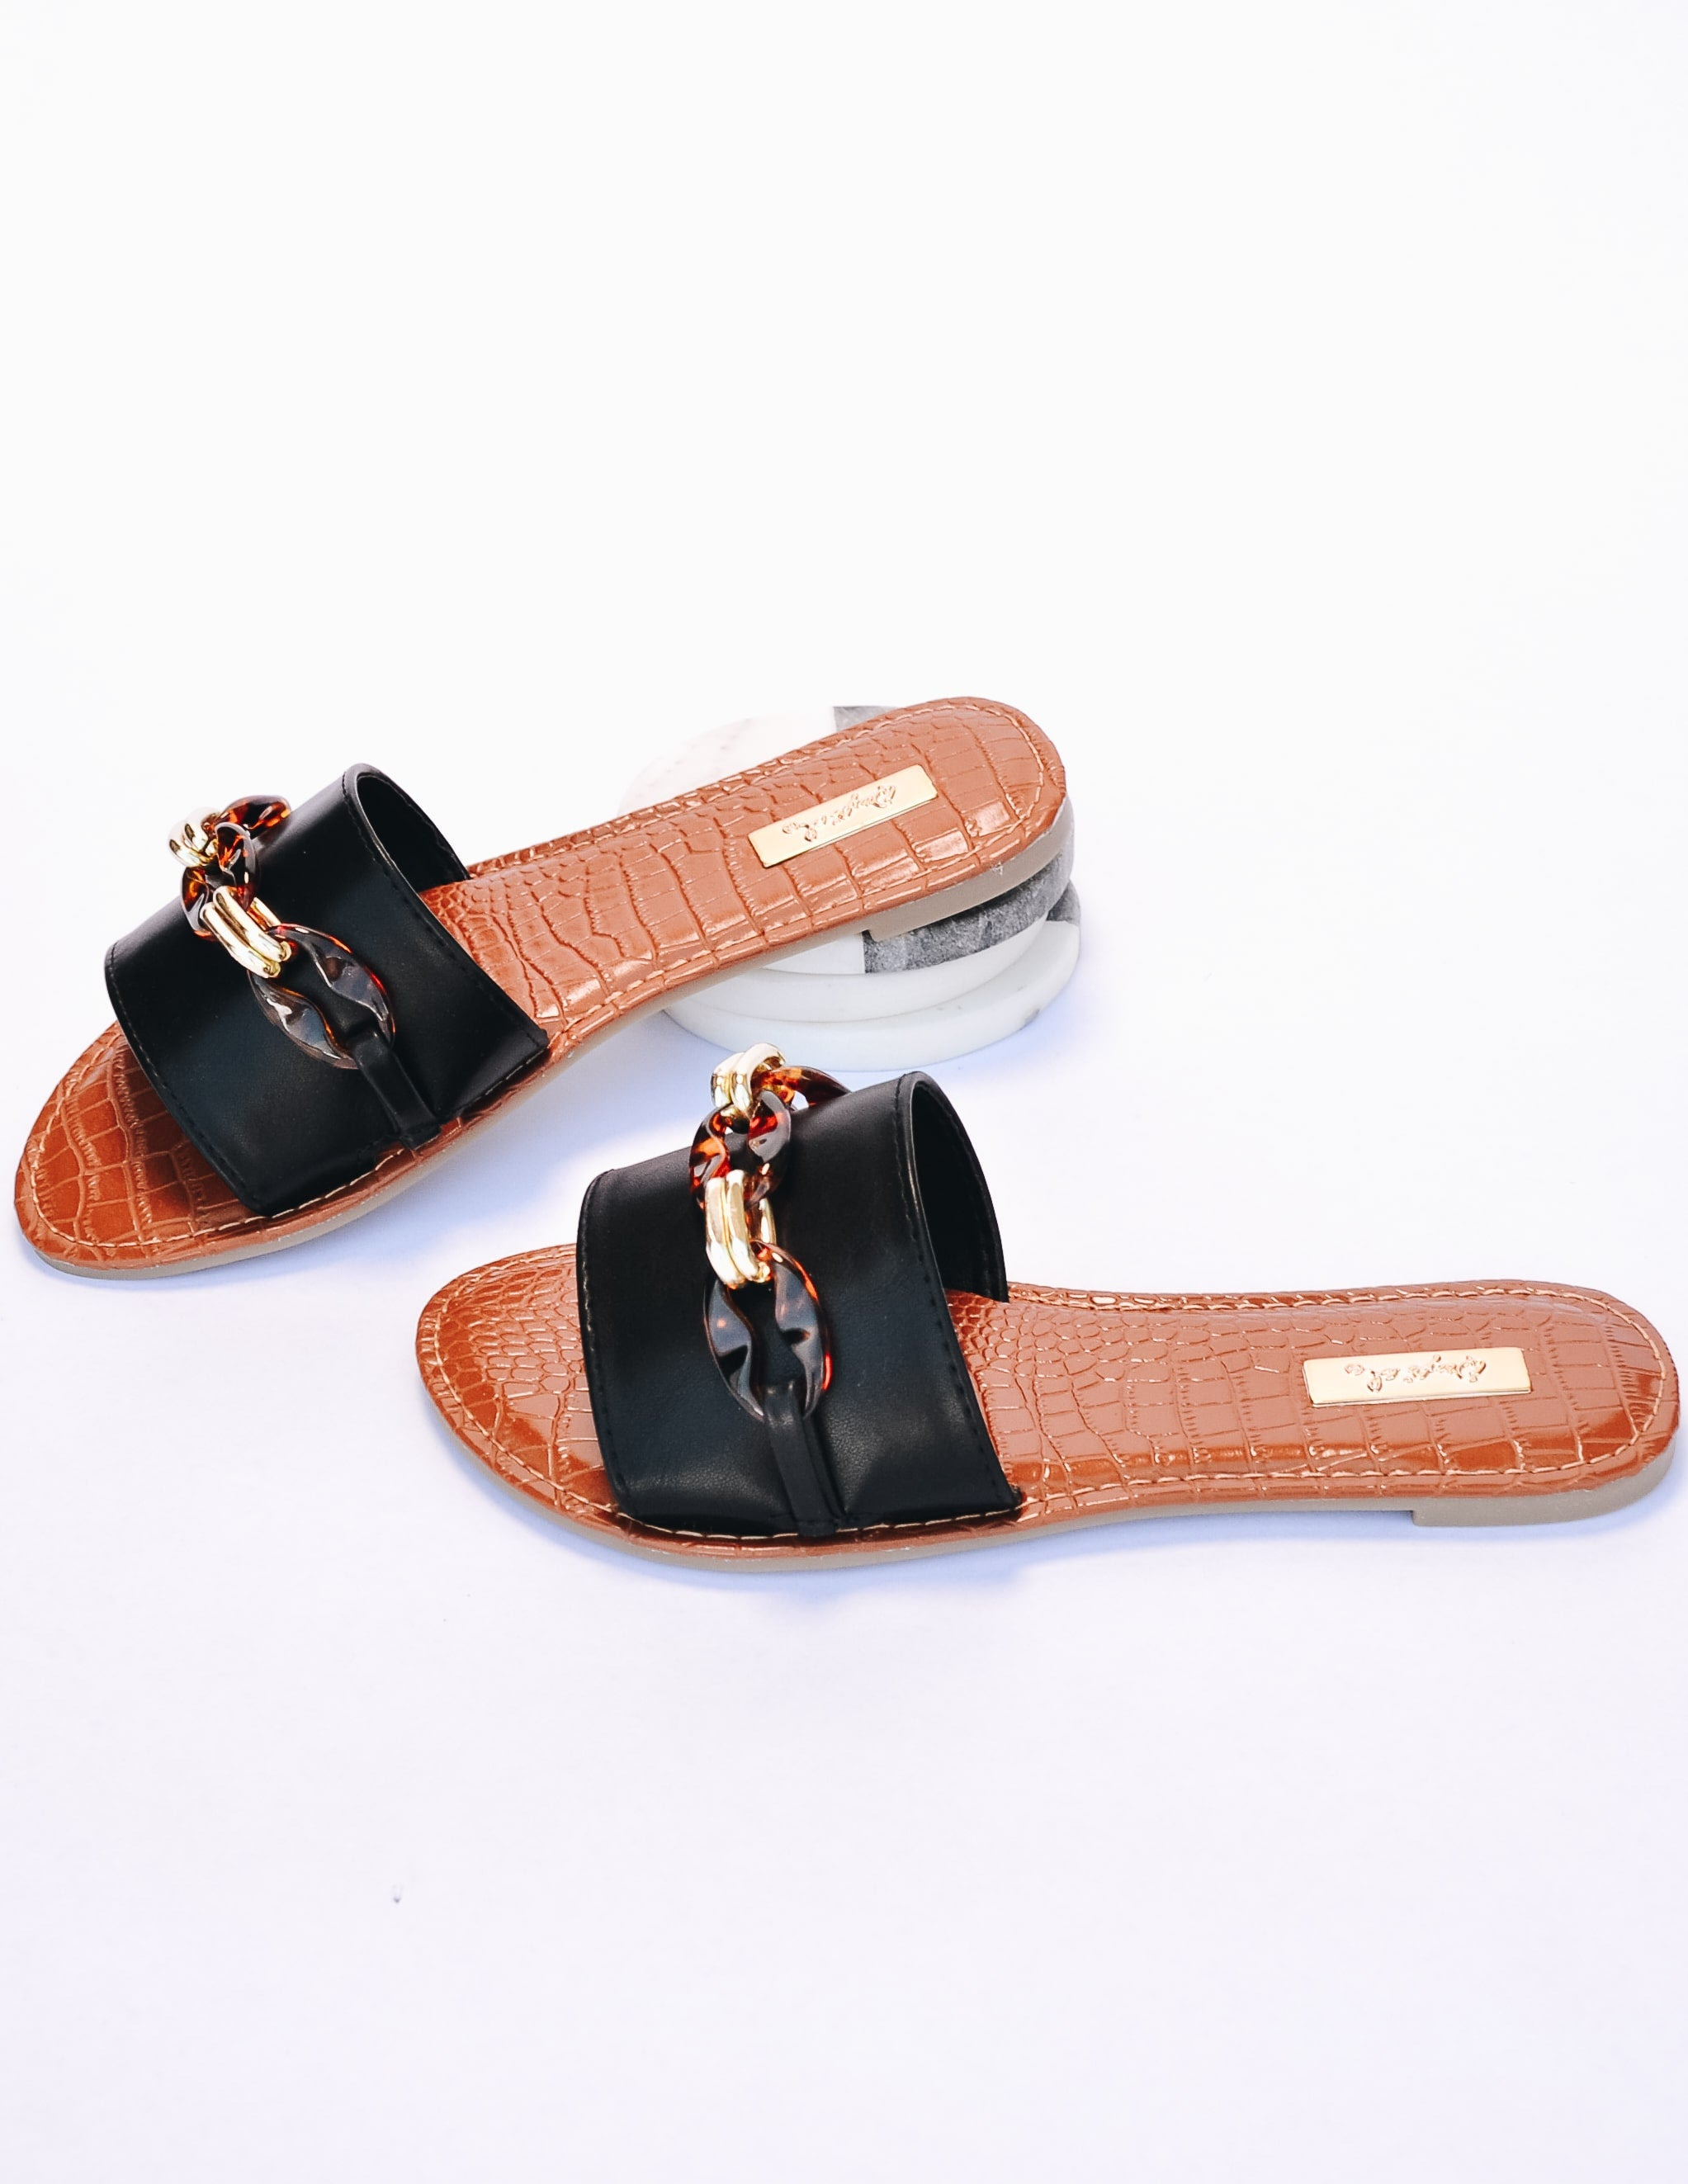 Black slide sandal with chain and tan croc insole - elle bleu